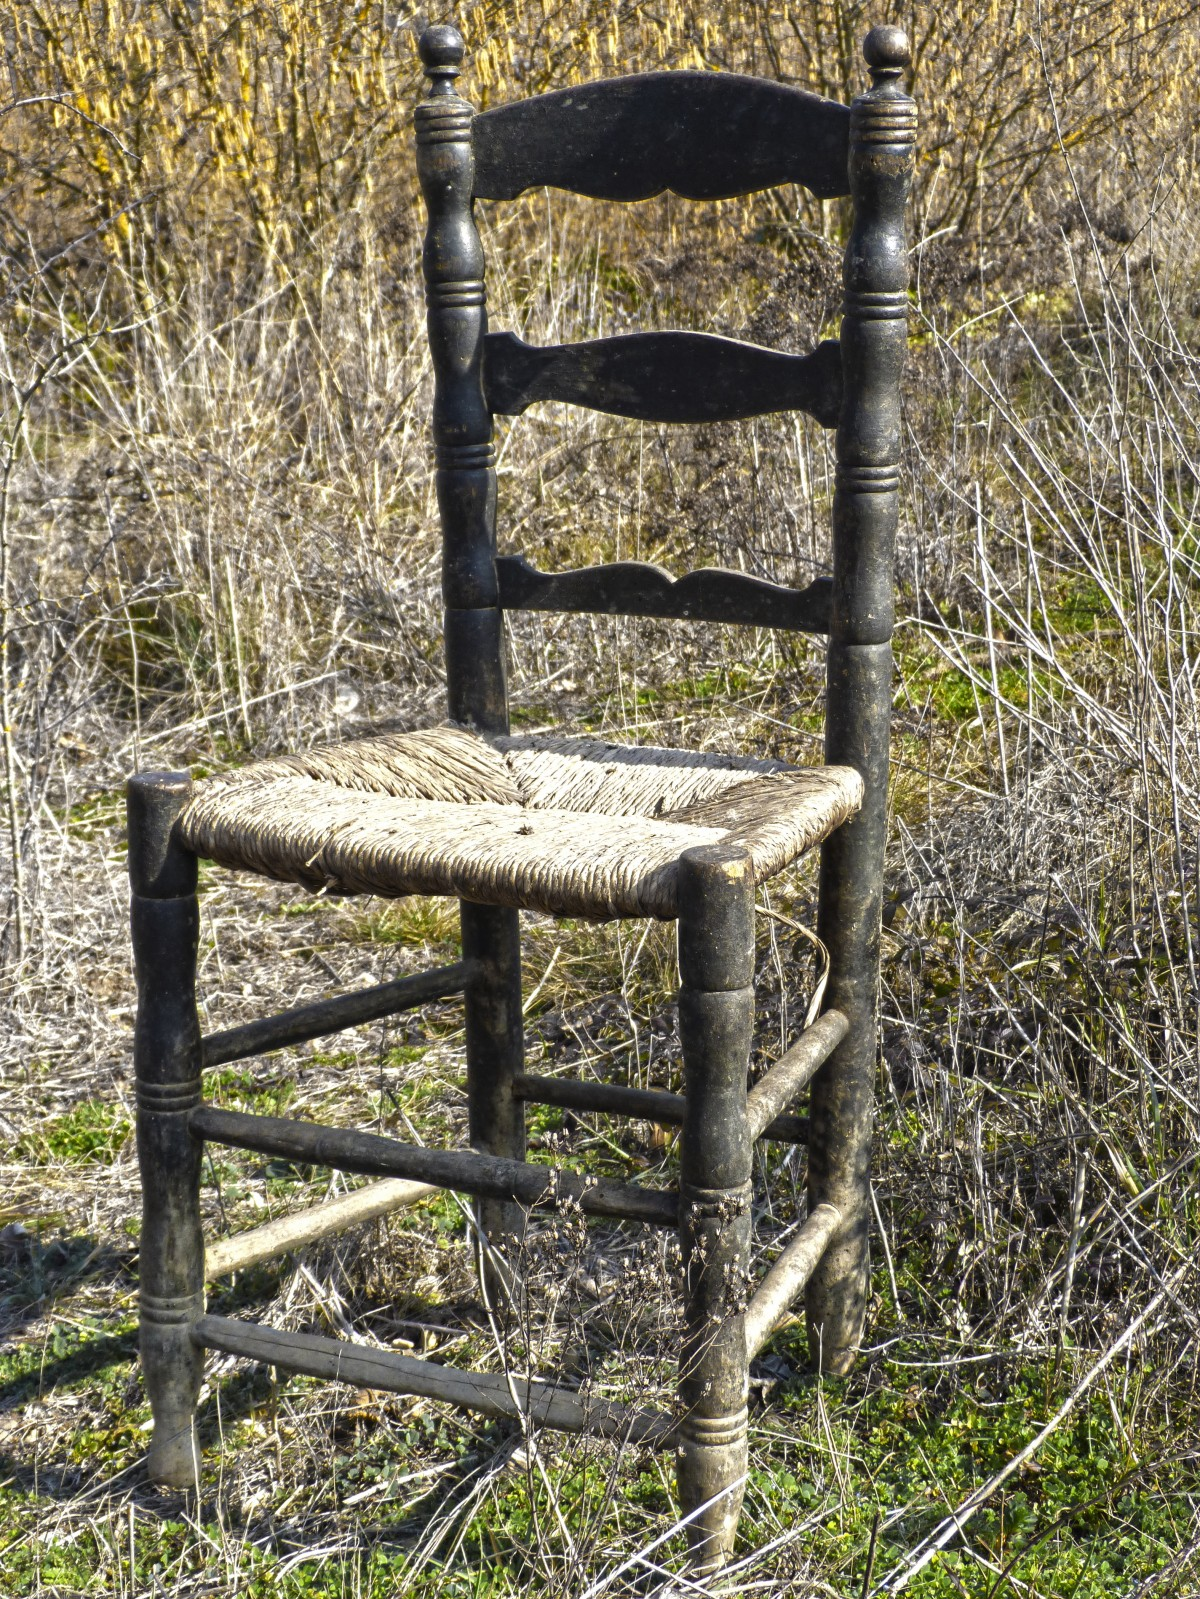 recliner chair handle broken office ergonomic free images table wood bench abandoned furniture